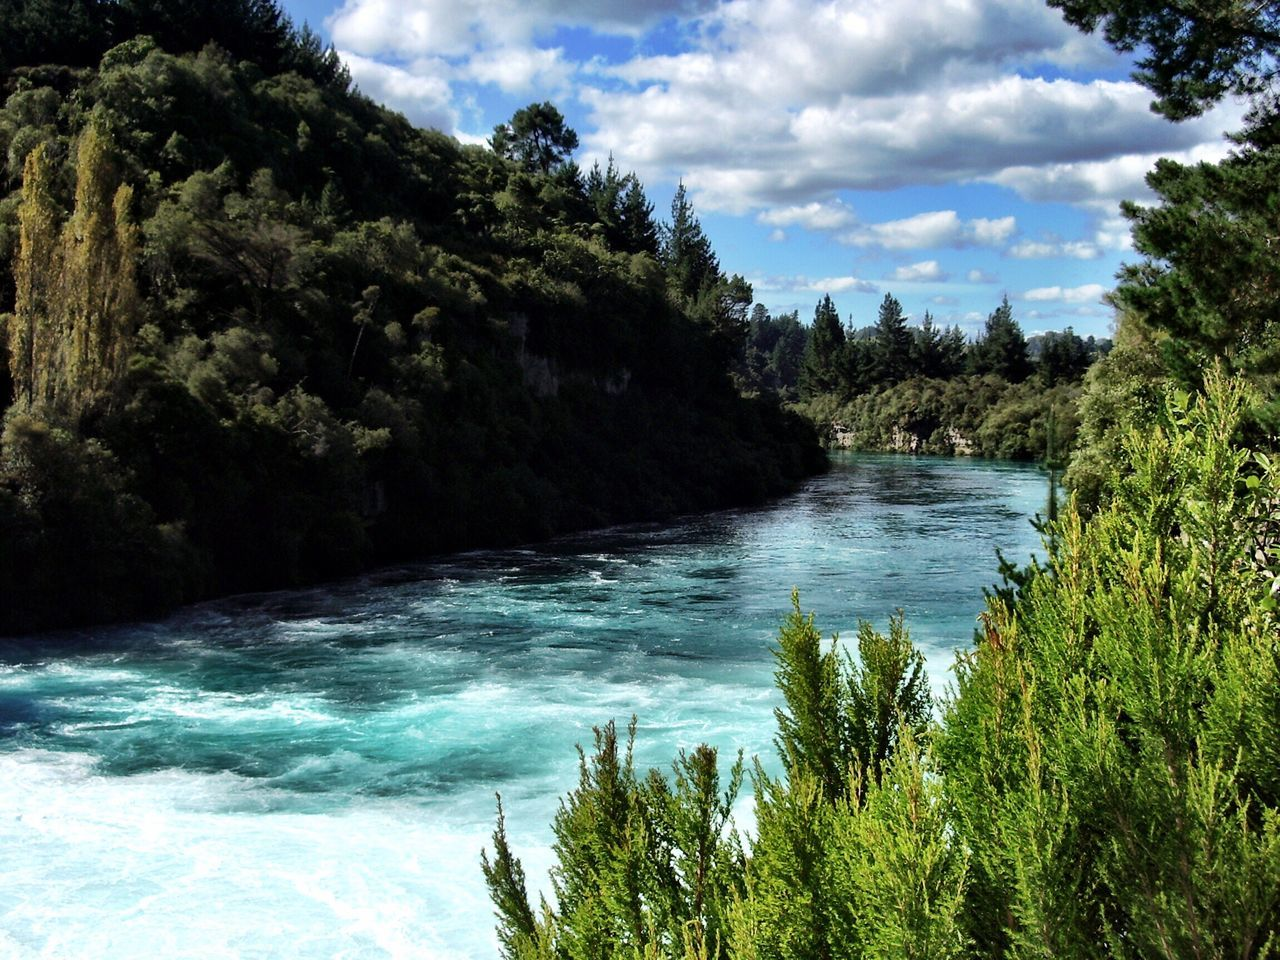 Taupo New Zealand Huka Falls, NZ Tree Nature Water Beauty In Nature Sky Scenics Tranquil Scene Cloud - Sky Outdoors Tranquility No People Growth Day